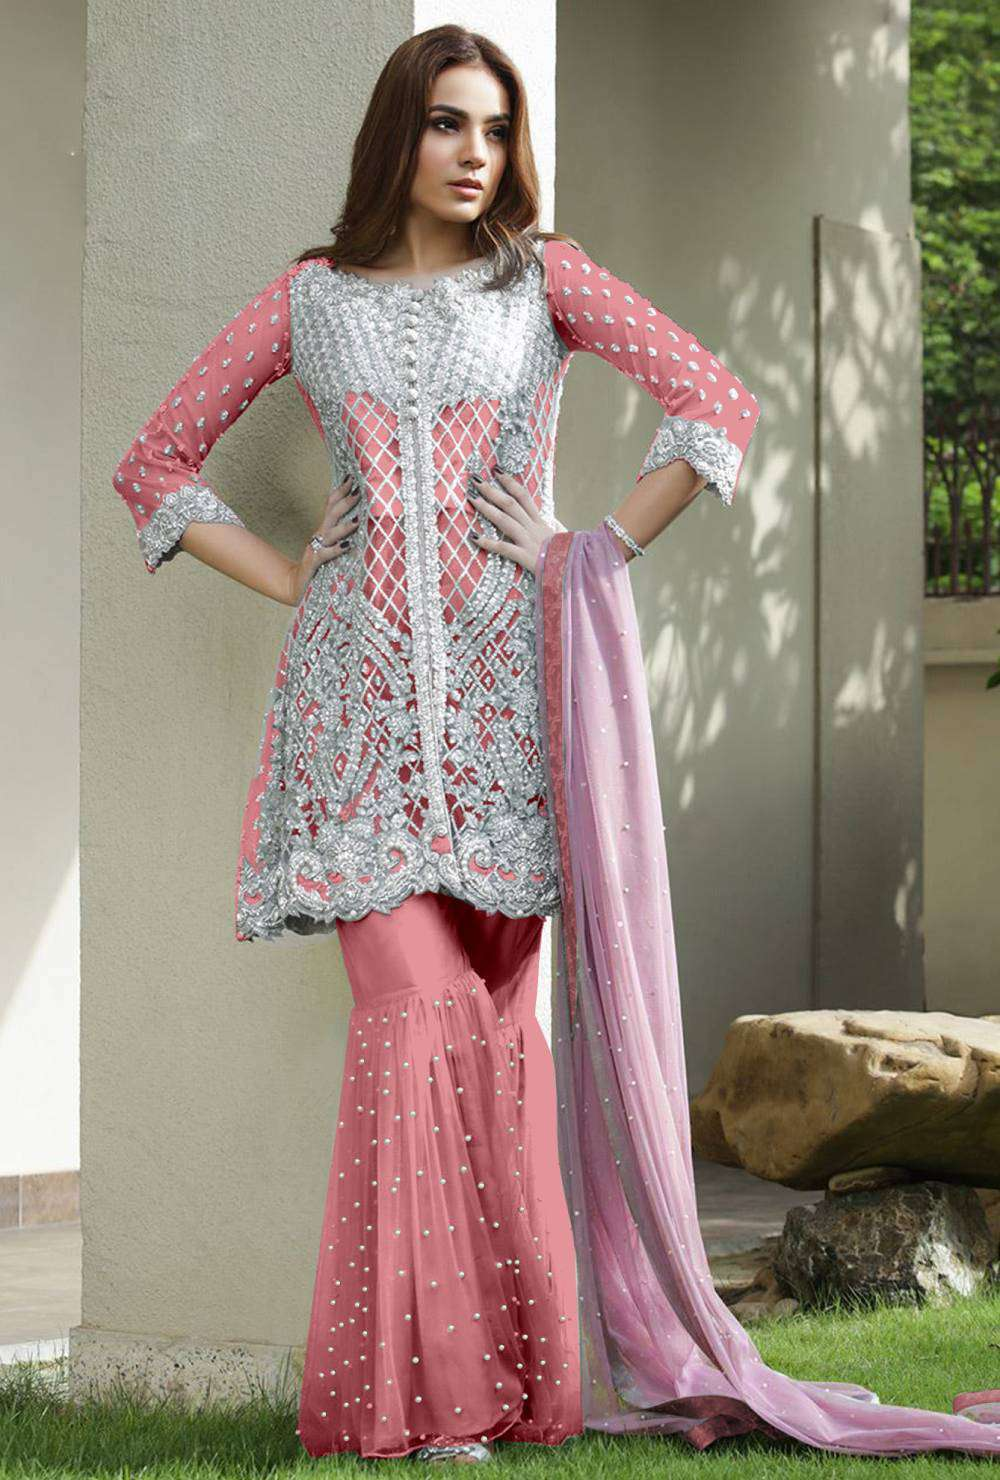 Stylish Flair Baby-Pink Net & Santoon With Embroidered Salwar Kameez MYSK-1693